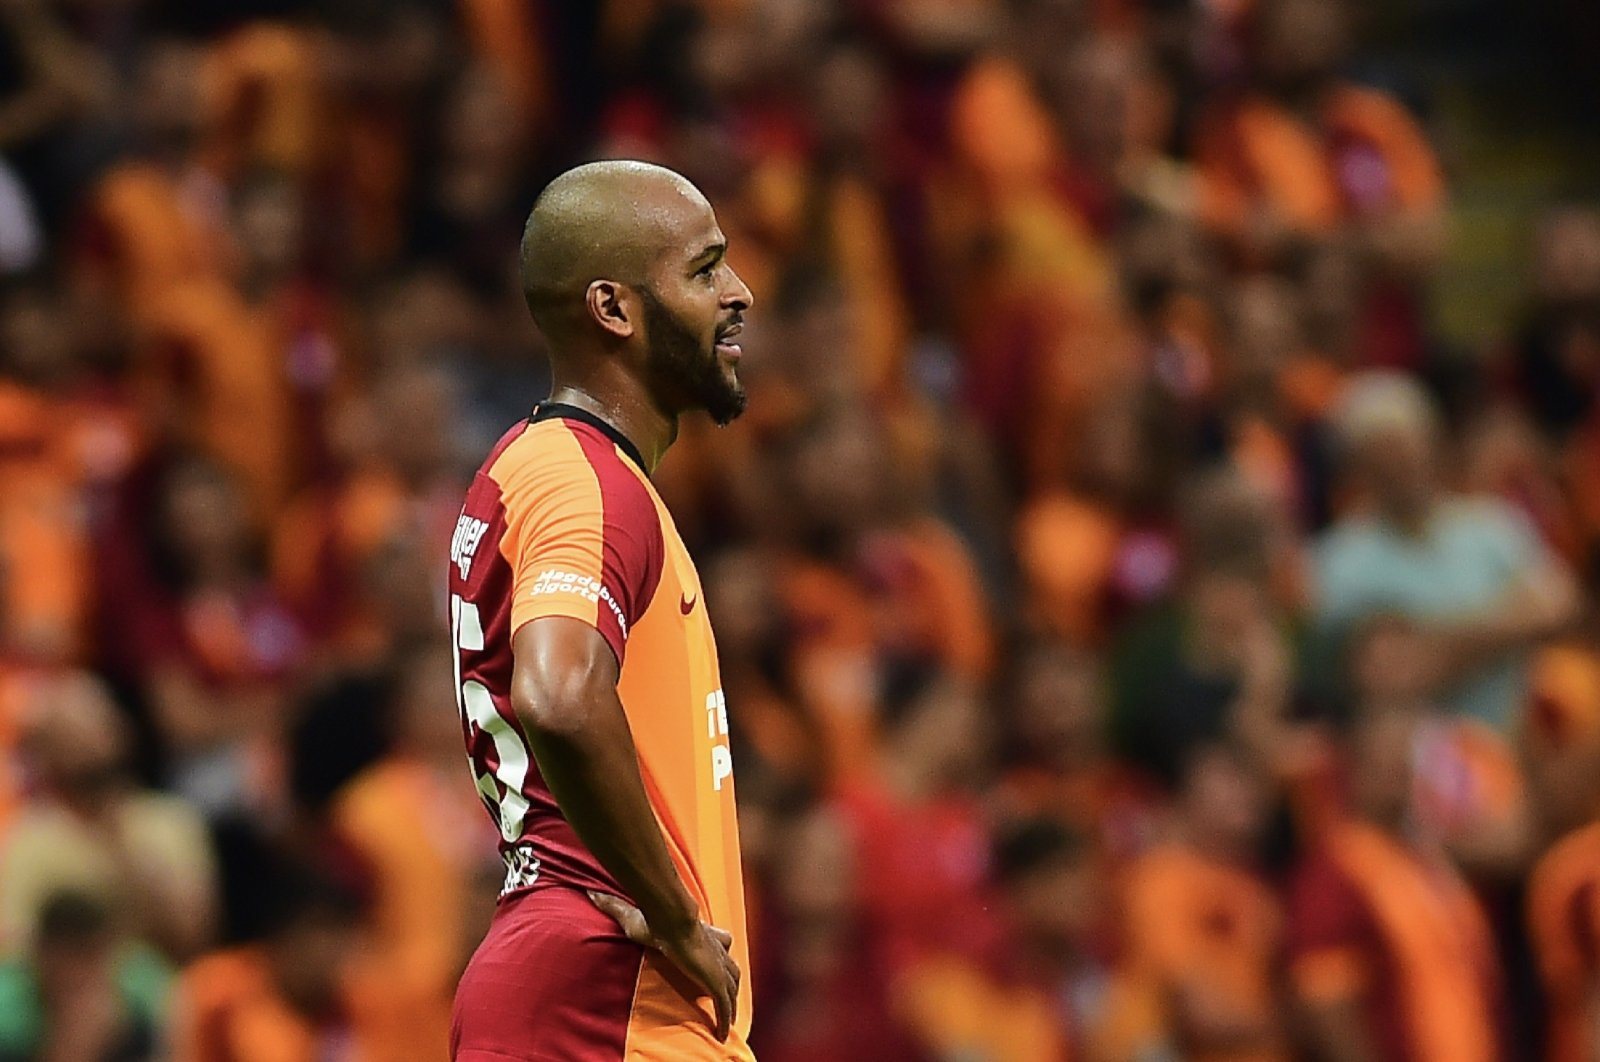 Galatasaray defender Marcao is seen in this file photo taken on Sept. 25, 2019. (Sabah Photo)